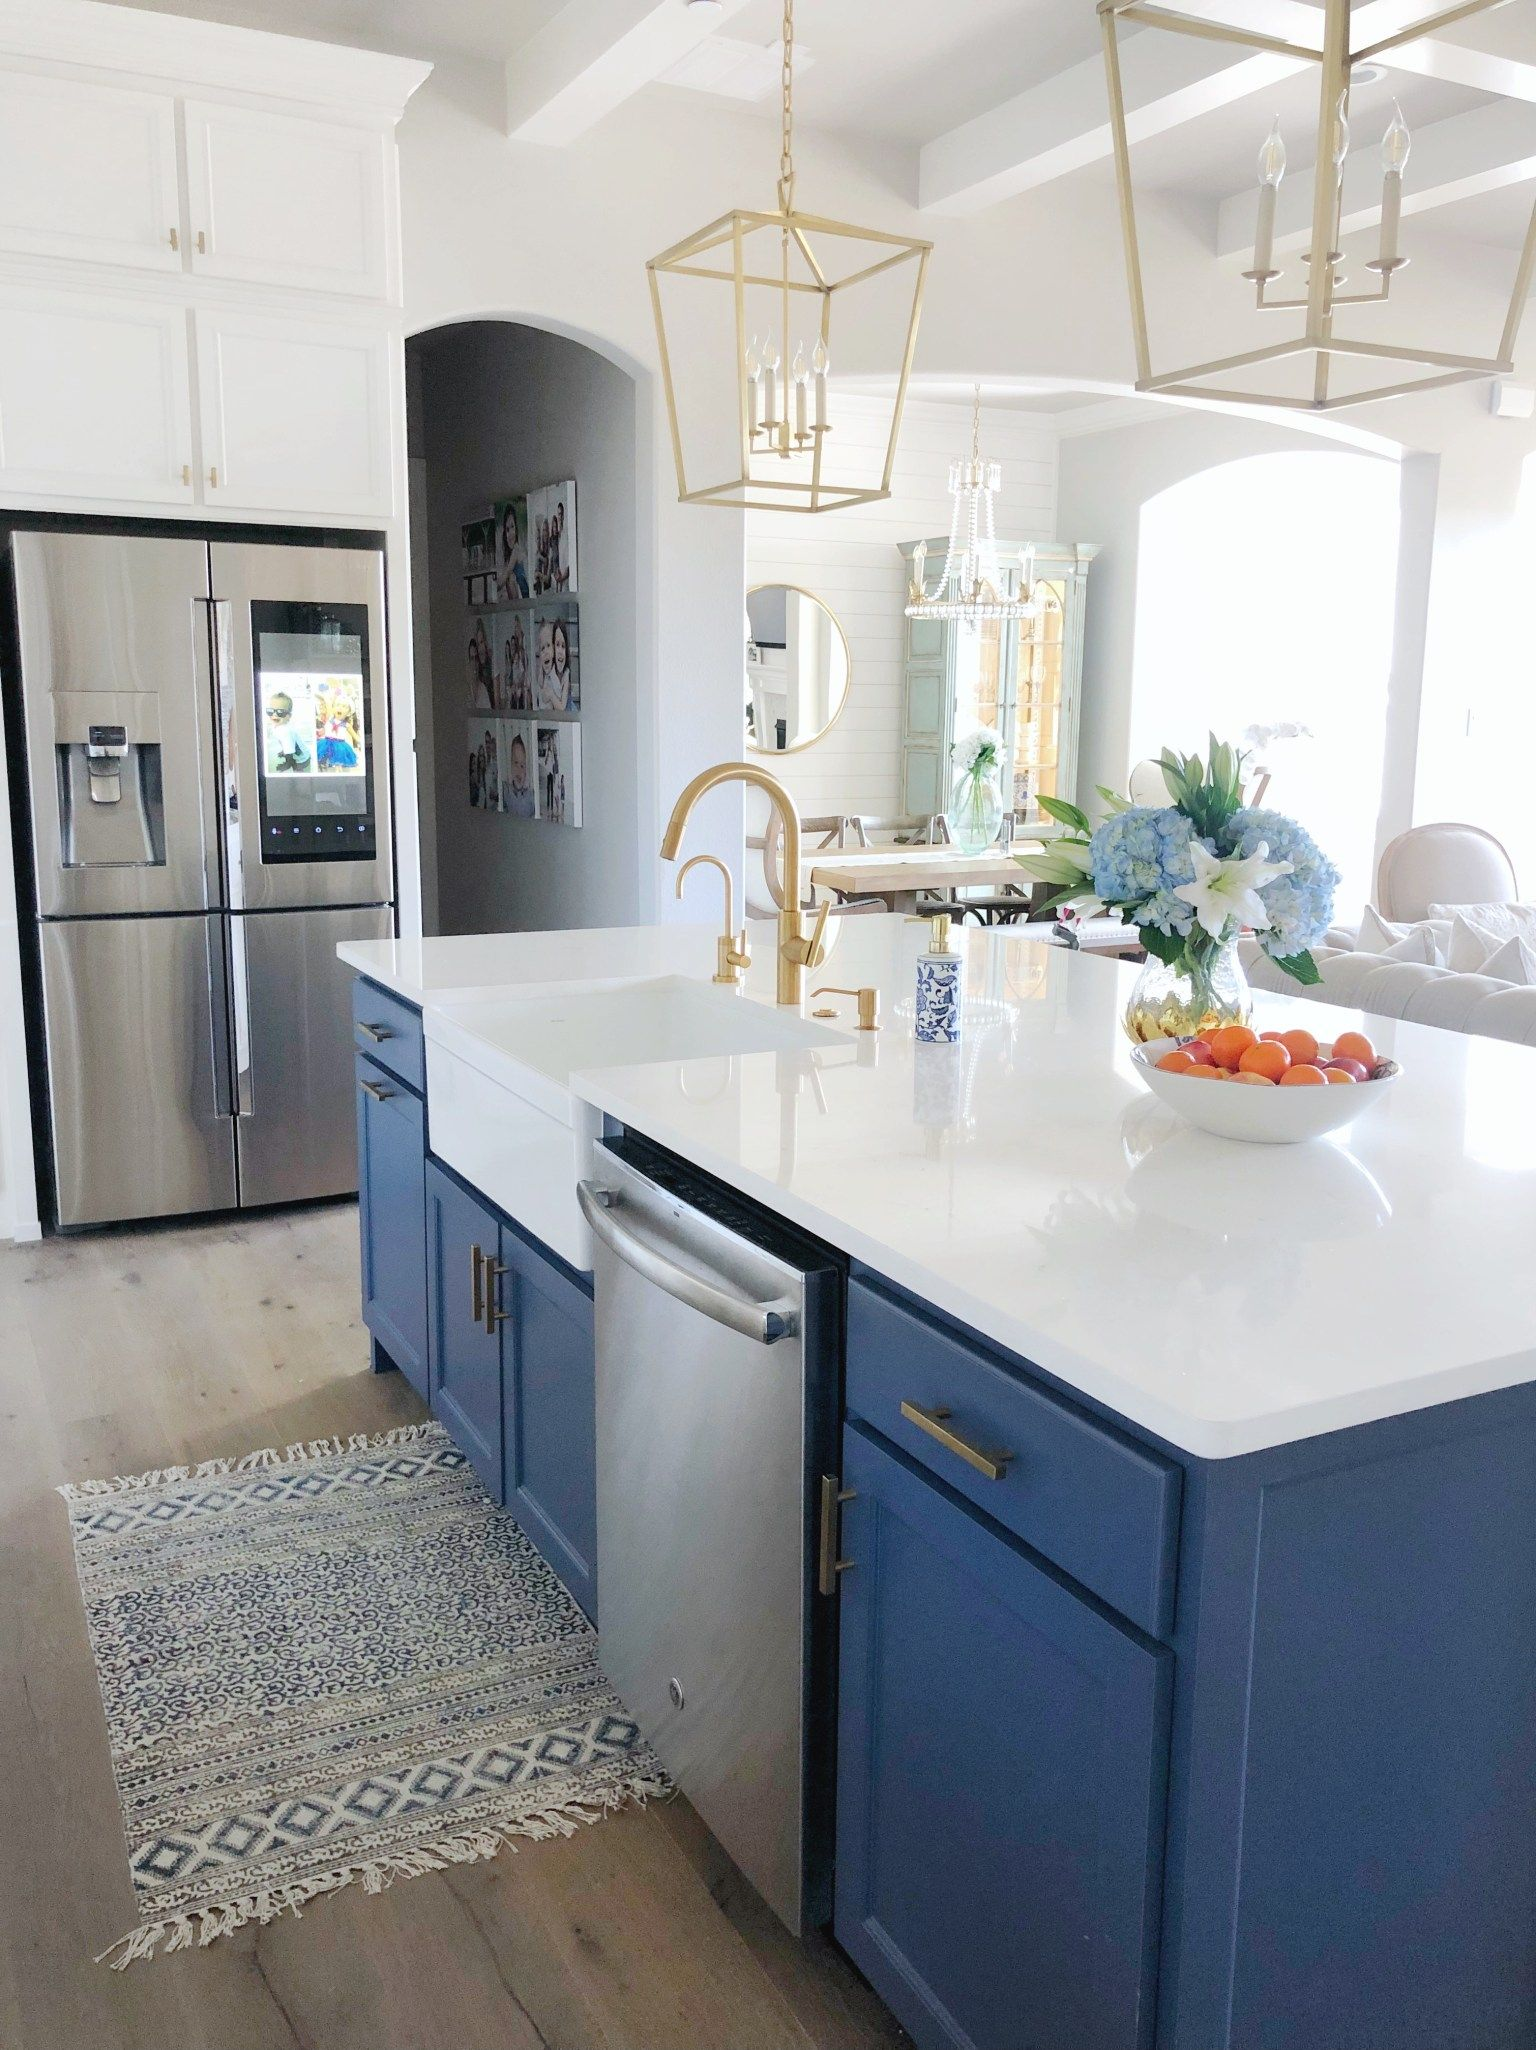 Kitchen Remodel: The Final Reveal | Kitchen remodel ...